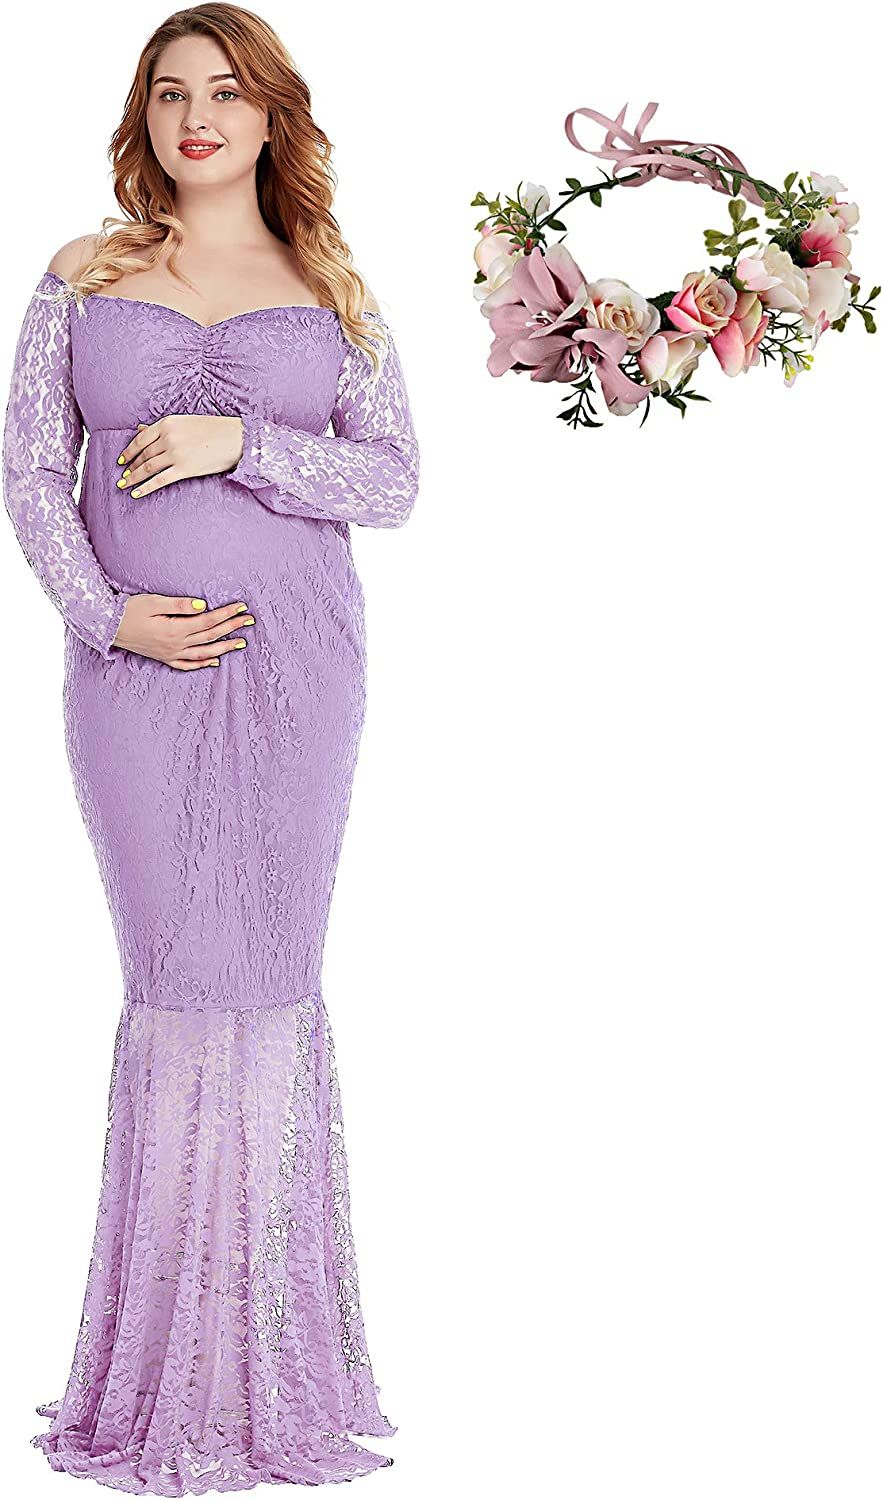 YOFEEL Pregnant Women Off Shoulder Long Sleeve Lace Maternity Gown Maxi Photography Dress